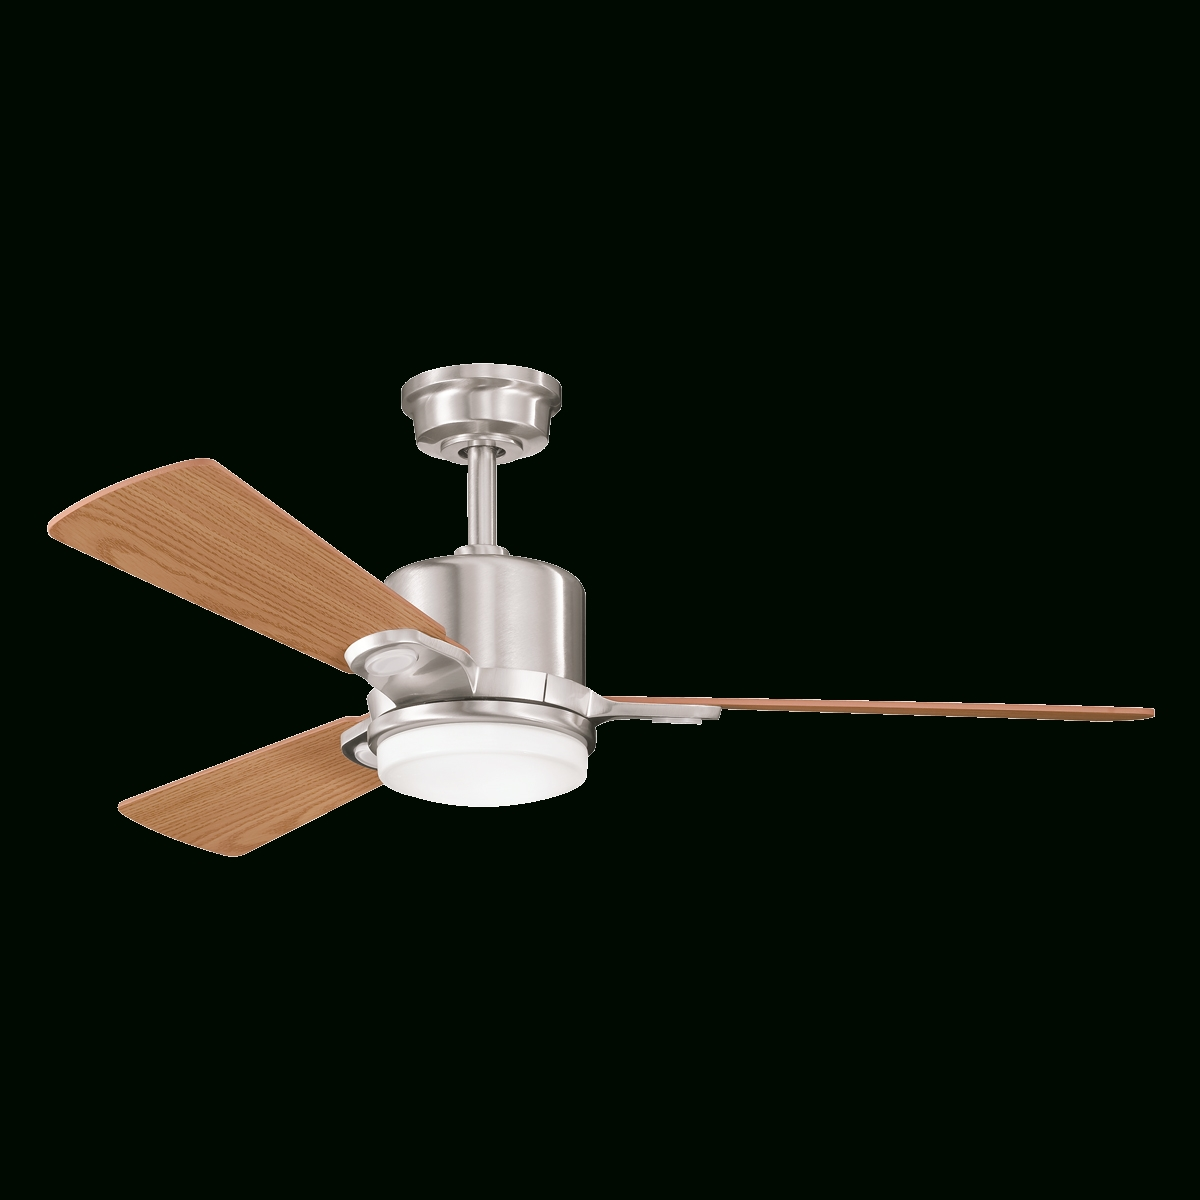 48 Inch Celino Contemporary Fan Bss With Most Recently Released 48 Inch Outdoor Ceiling Fans (Gallery 3 of 20)